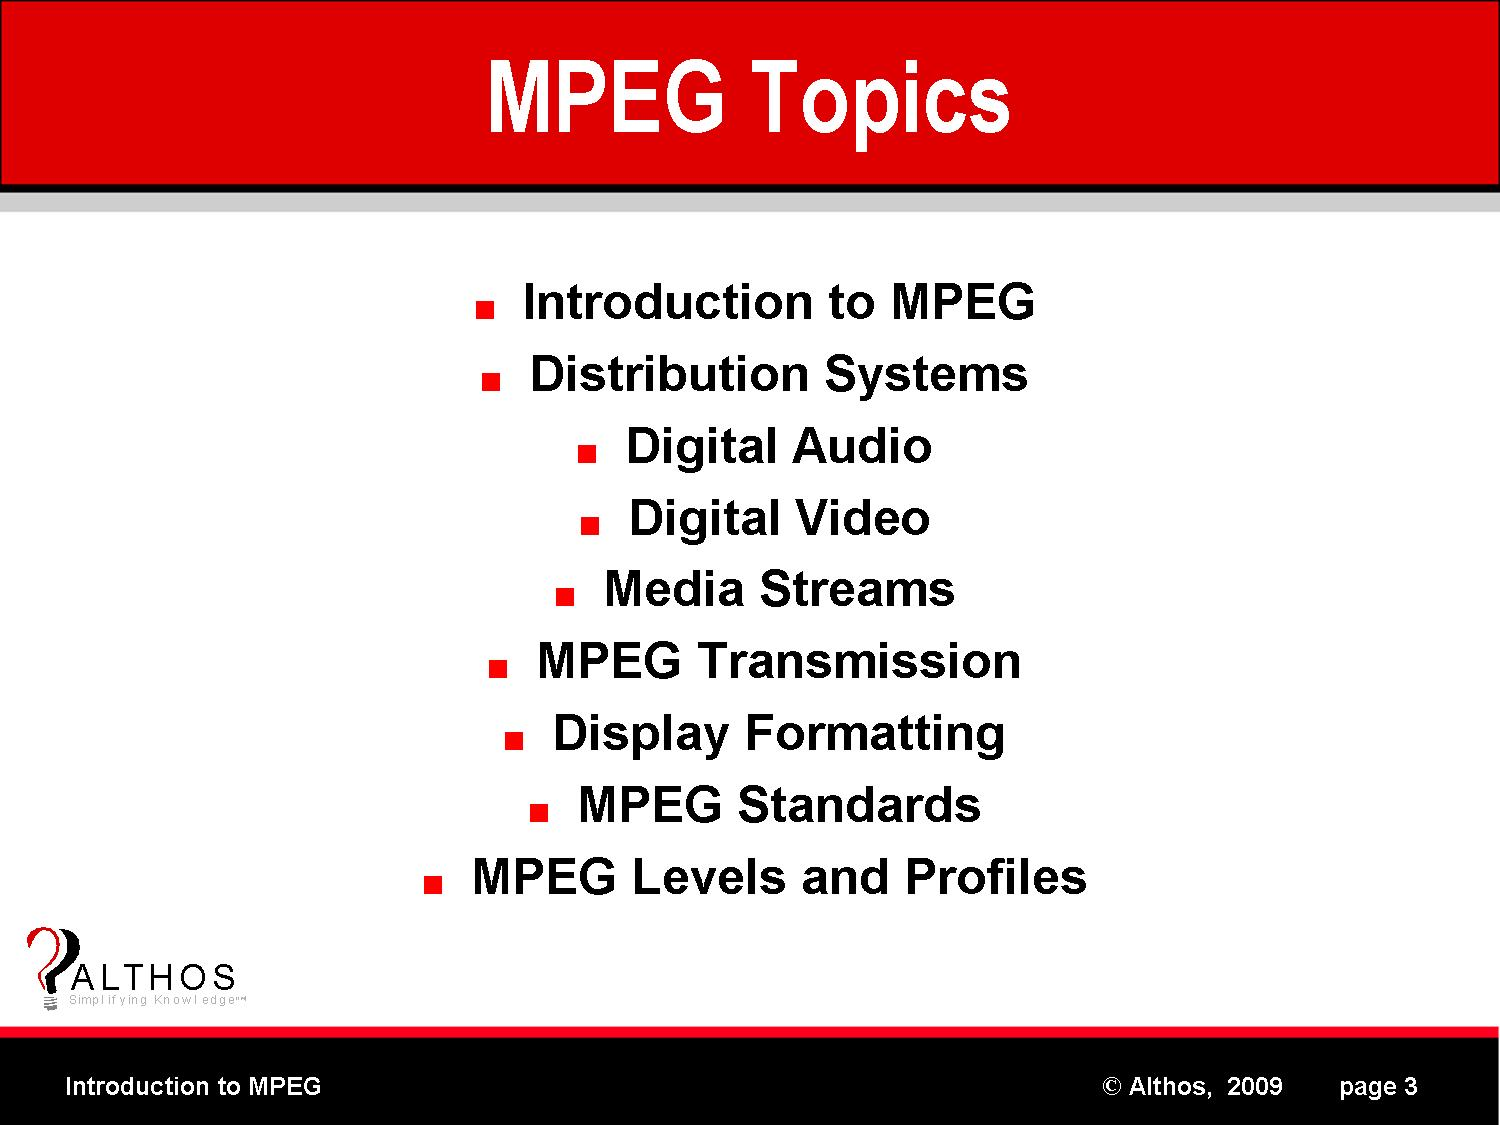 tutorial questions mpeg audio compression mp3 Mpeg-1 audio layer ii or mpeg-2 audio layer ii (mp2, sometimes incorrectly called musicam or musicam) is a lossy audio compression format defined by iso/iec 11172-3 alongside mpeg-1 audio layer i and mpeg-1 audio layer iii (mp3.